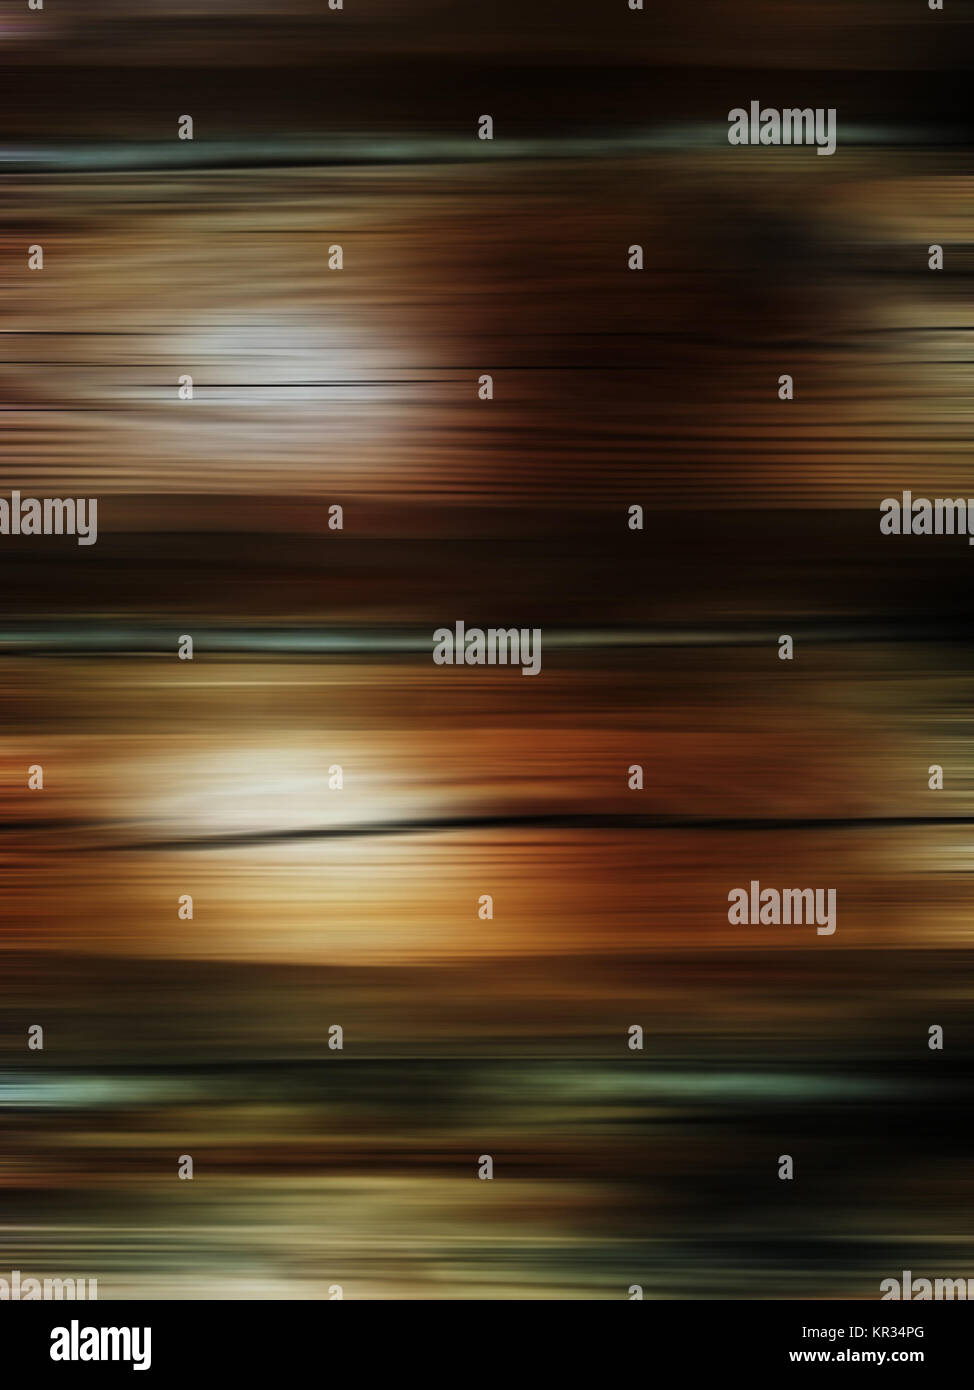 Logs Background Stockfotos & Logs Background Bilder - Seite 28 - Alamy